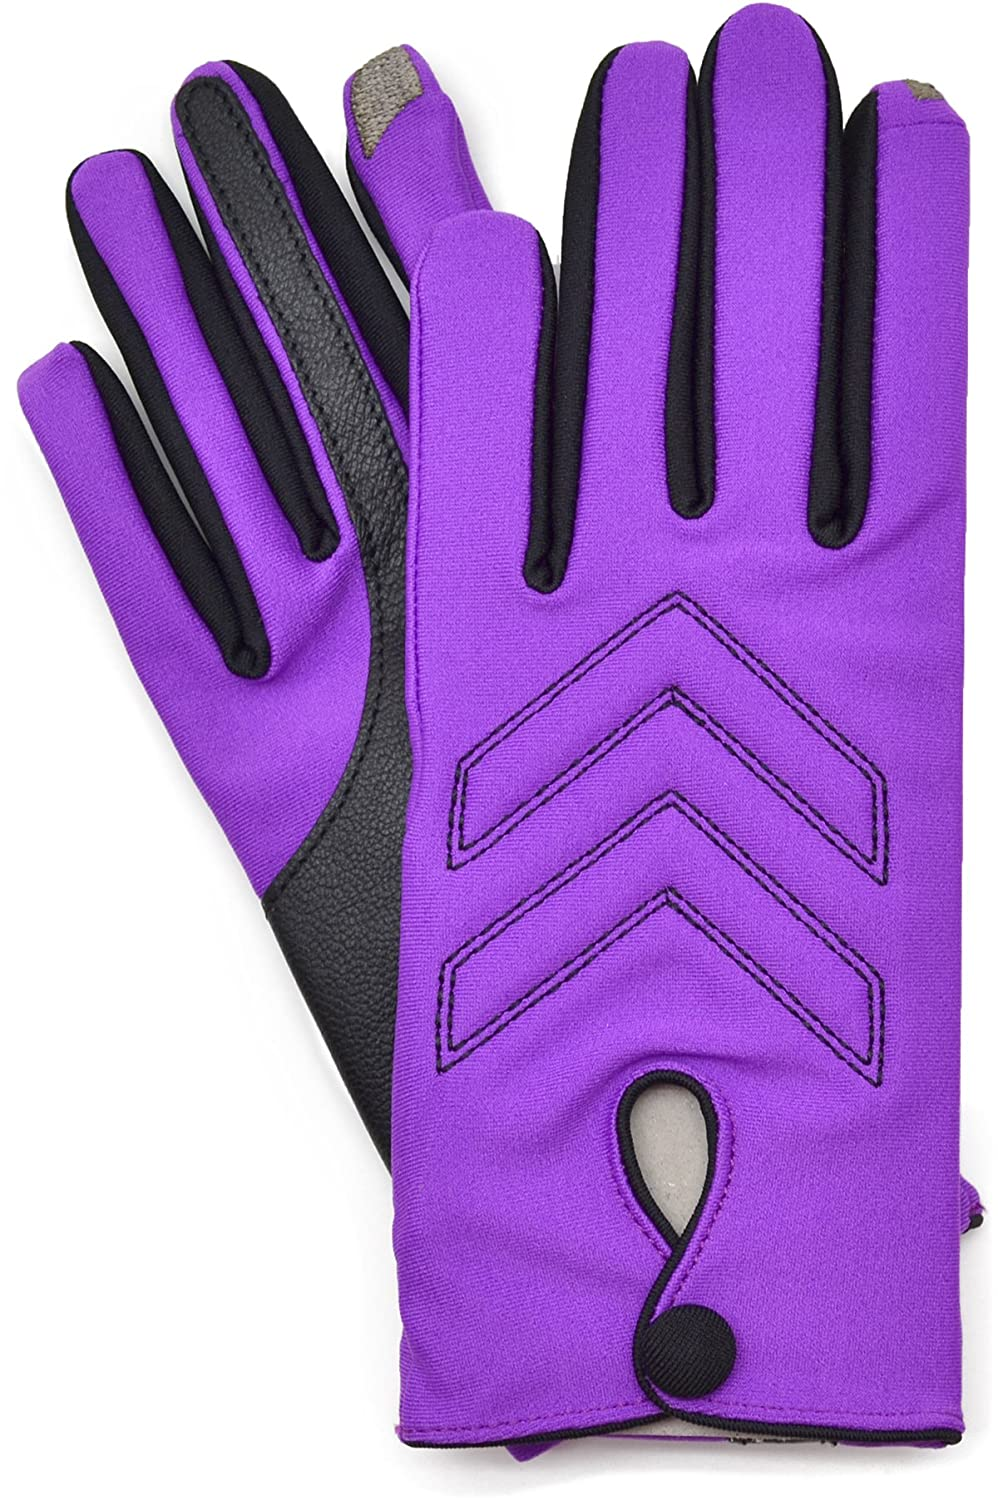 Isotoner Smartouch Touchscreen Isoflex Two Tone Gloves Black- Violet X-Large